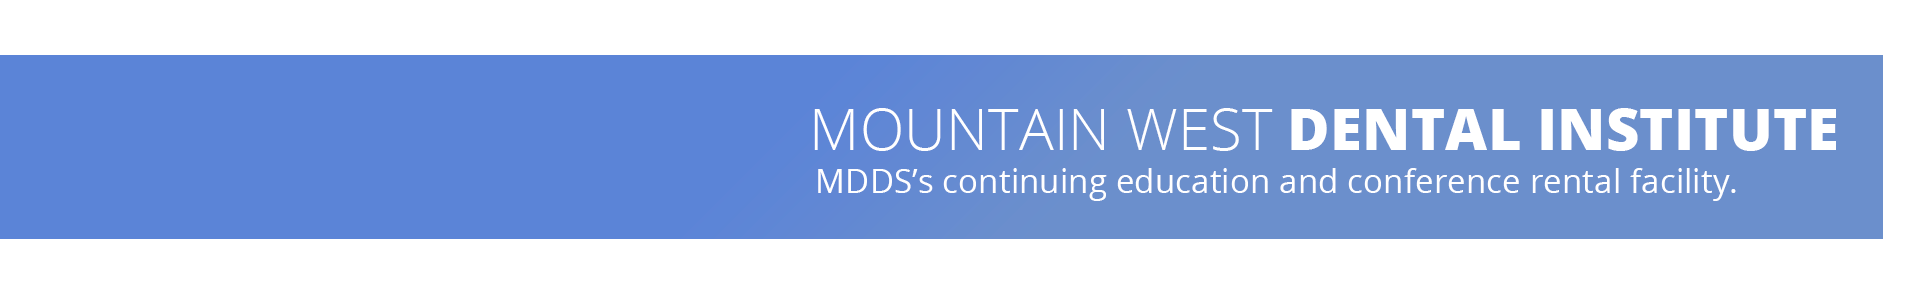 Mountain West Dental Institute MDDS's continuing education and conference rental facility